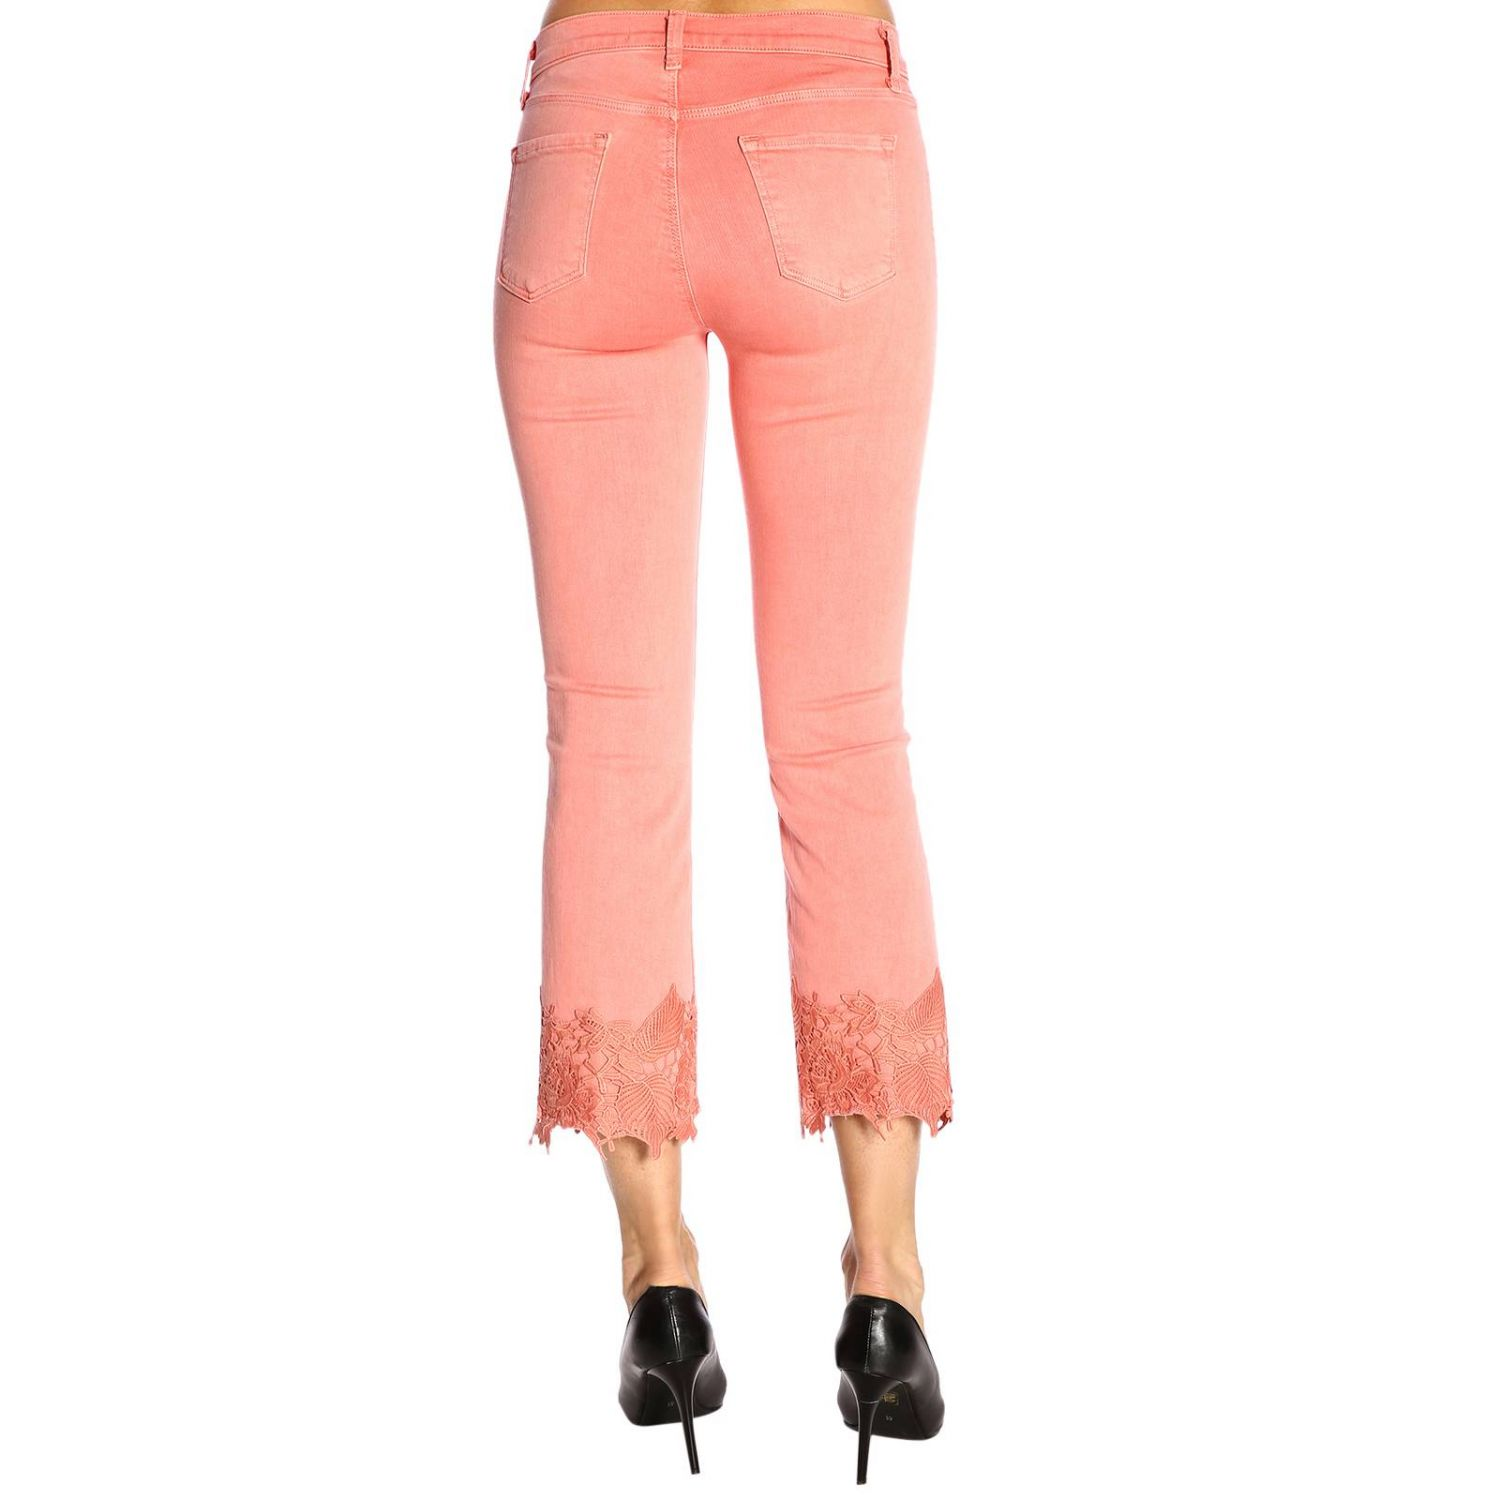 Jeans mujer J Brand rosa 3